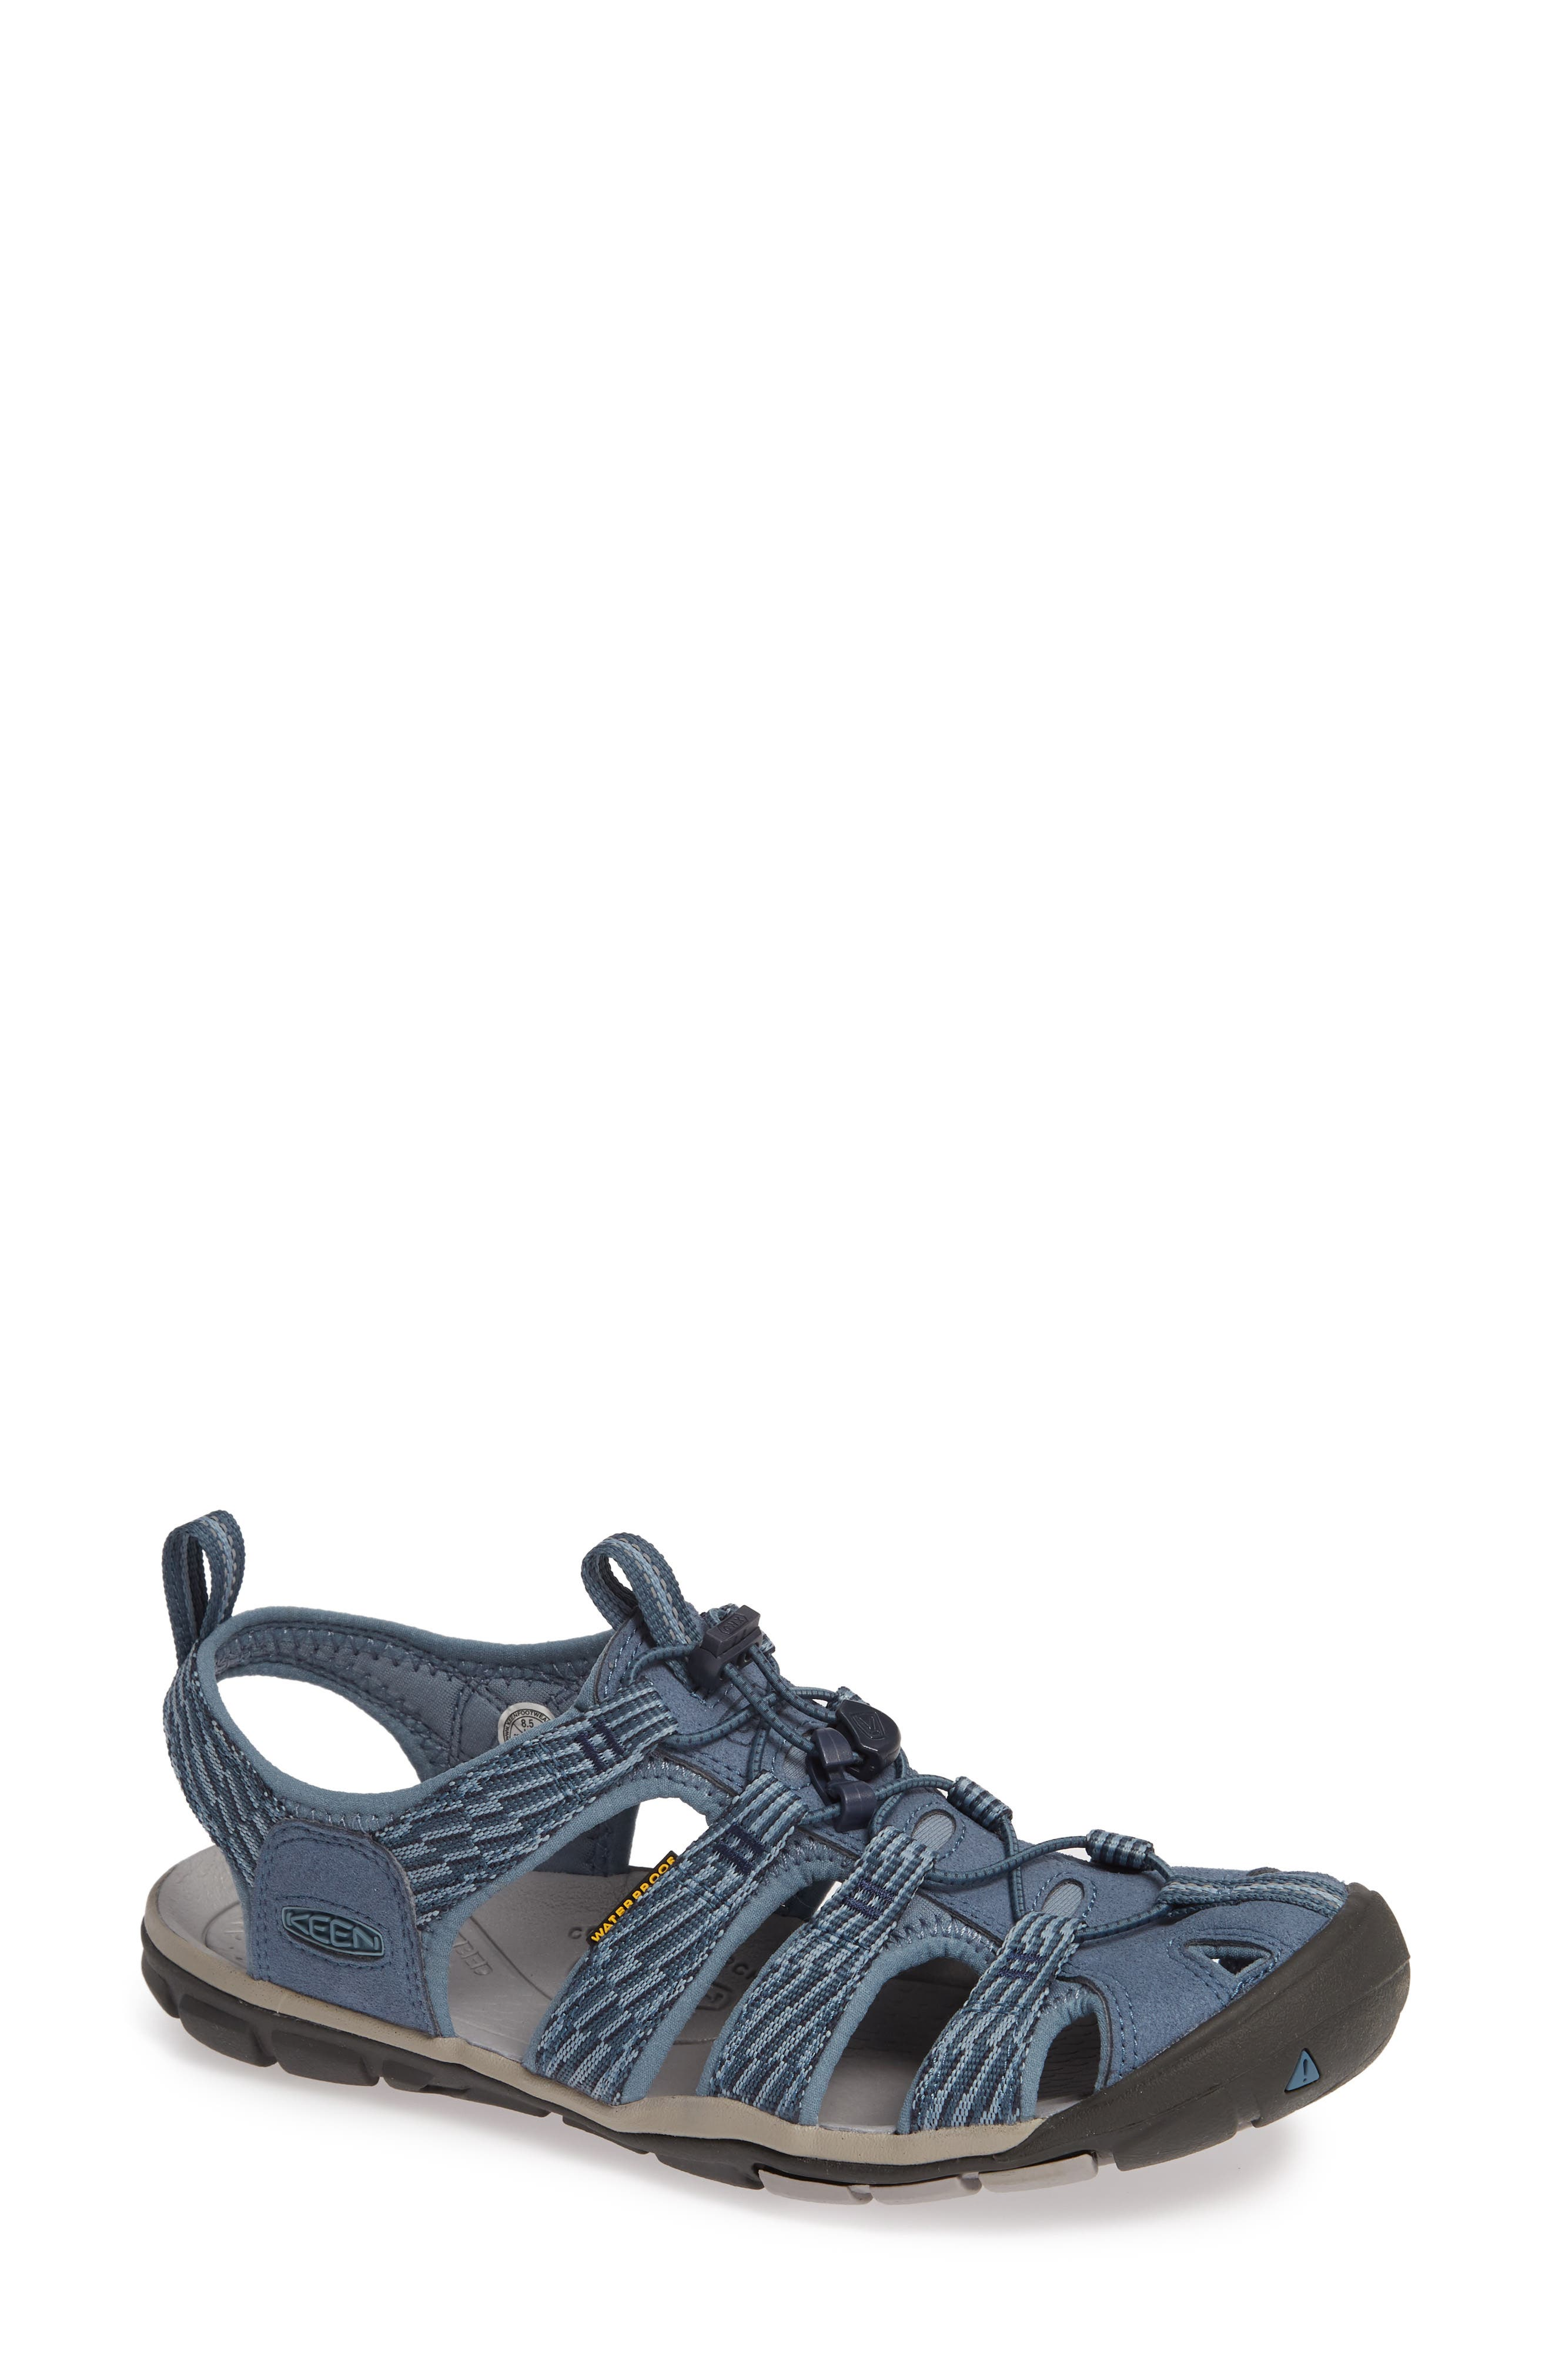 KEEN, 'Clearwater CNX' Sandal, Main thumbnail 1, color, BLUE MIRAGE/ CITADEL FABRIC